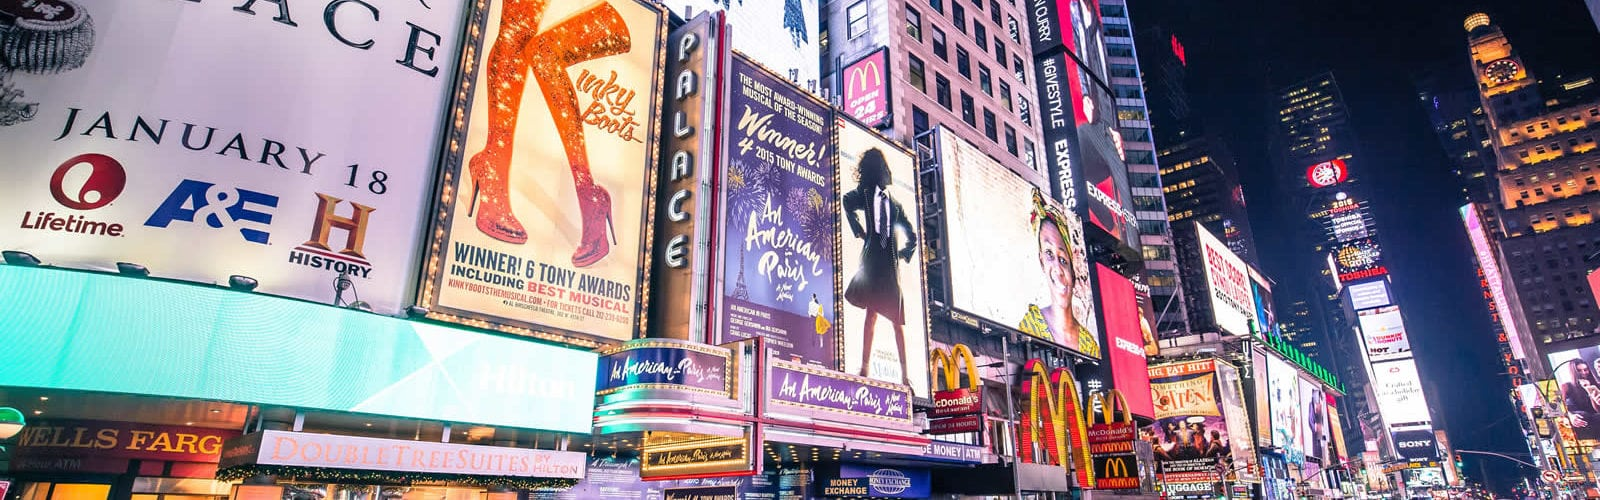 show-broadway-comedie-musicale-concert-spectacle-prix-reduit-une